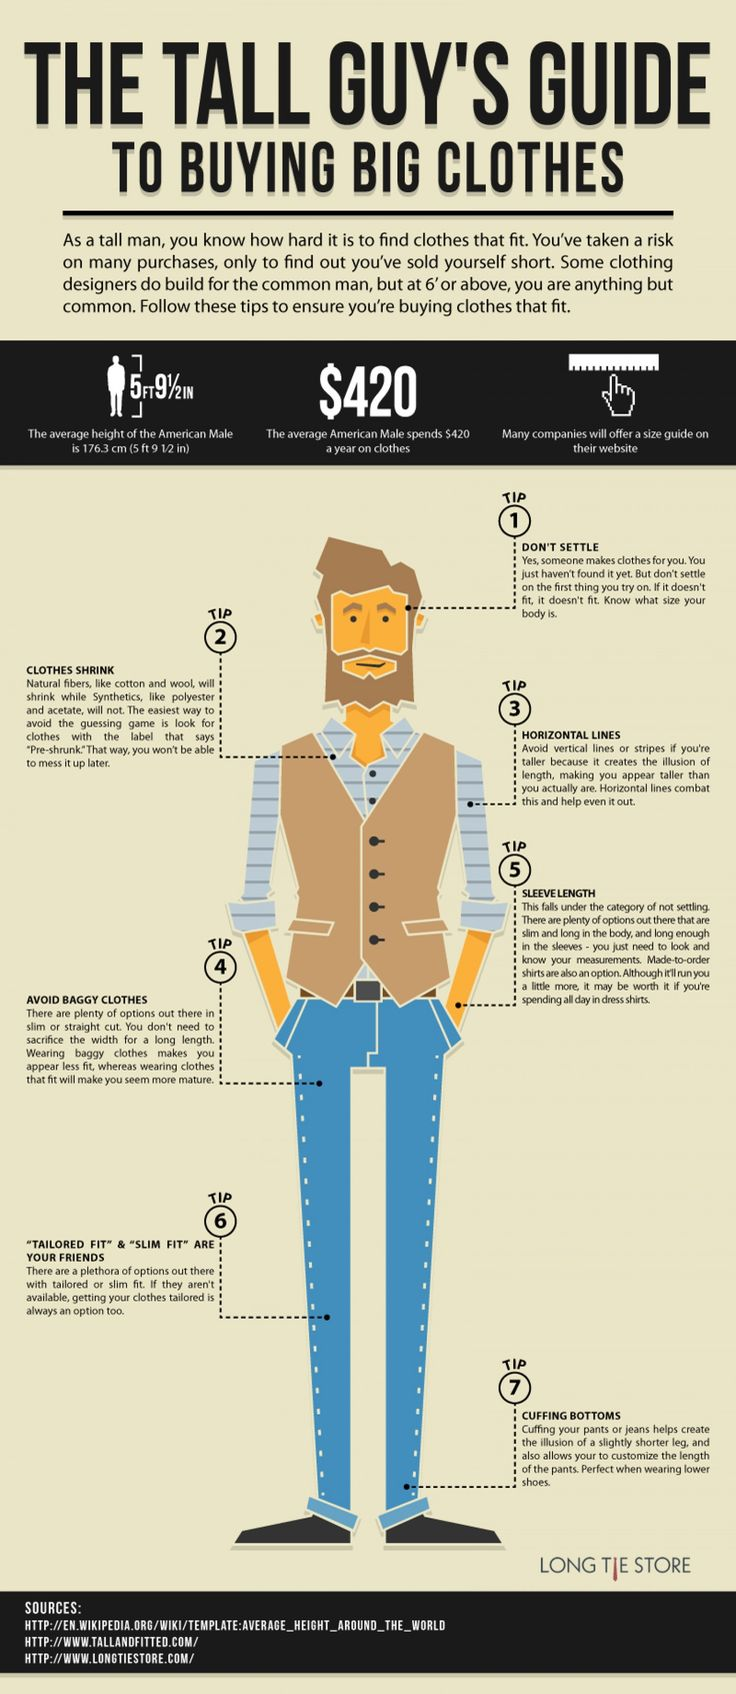 Illustrative infographic that explain some tips for tall men who usually have hard times looking for ideal clothes.